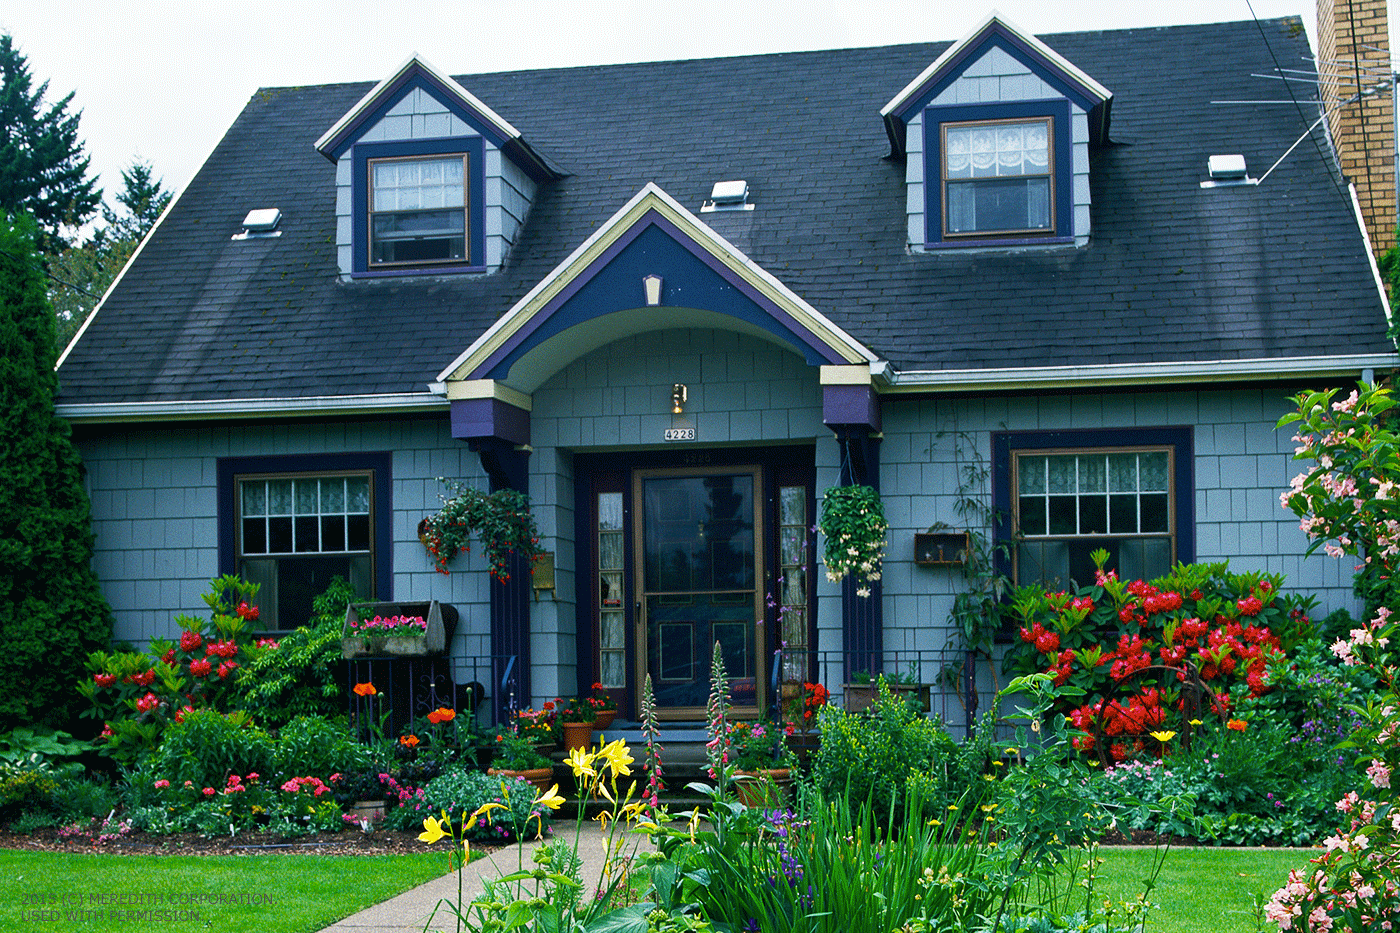 Recommended start flower garden in front of the house